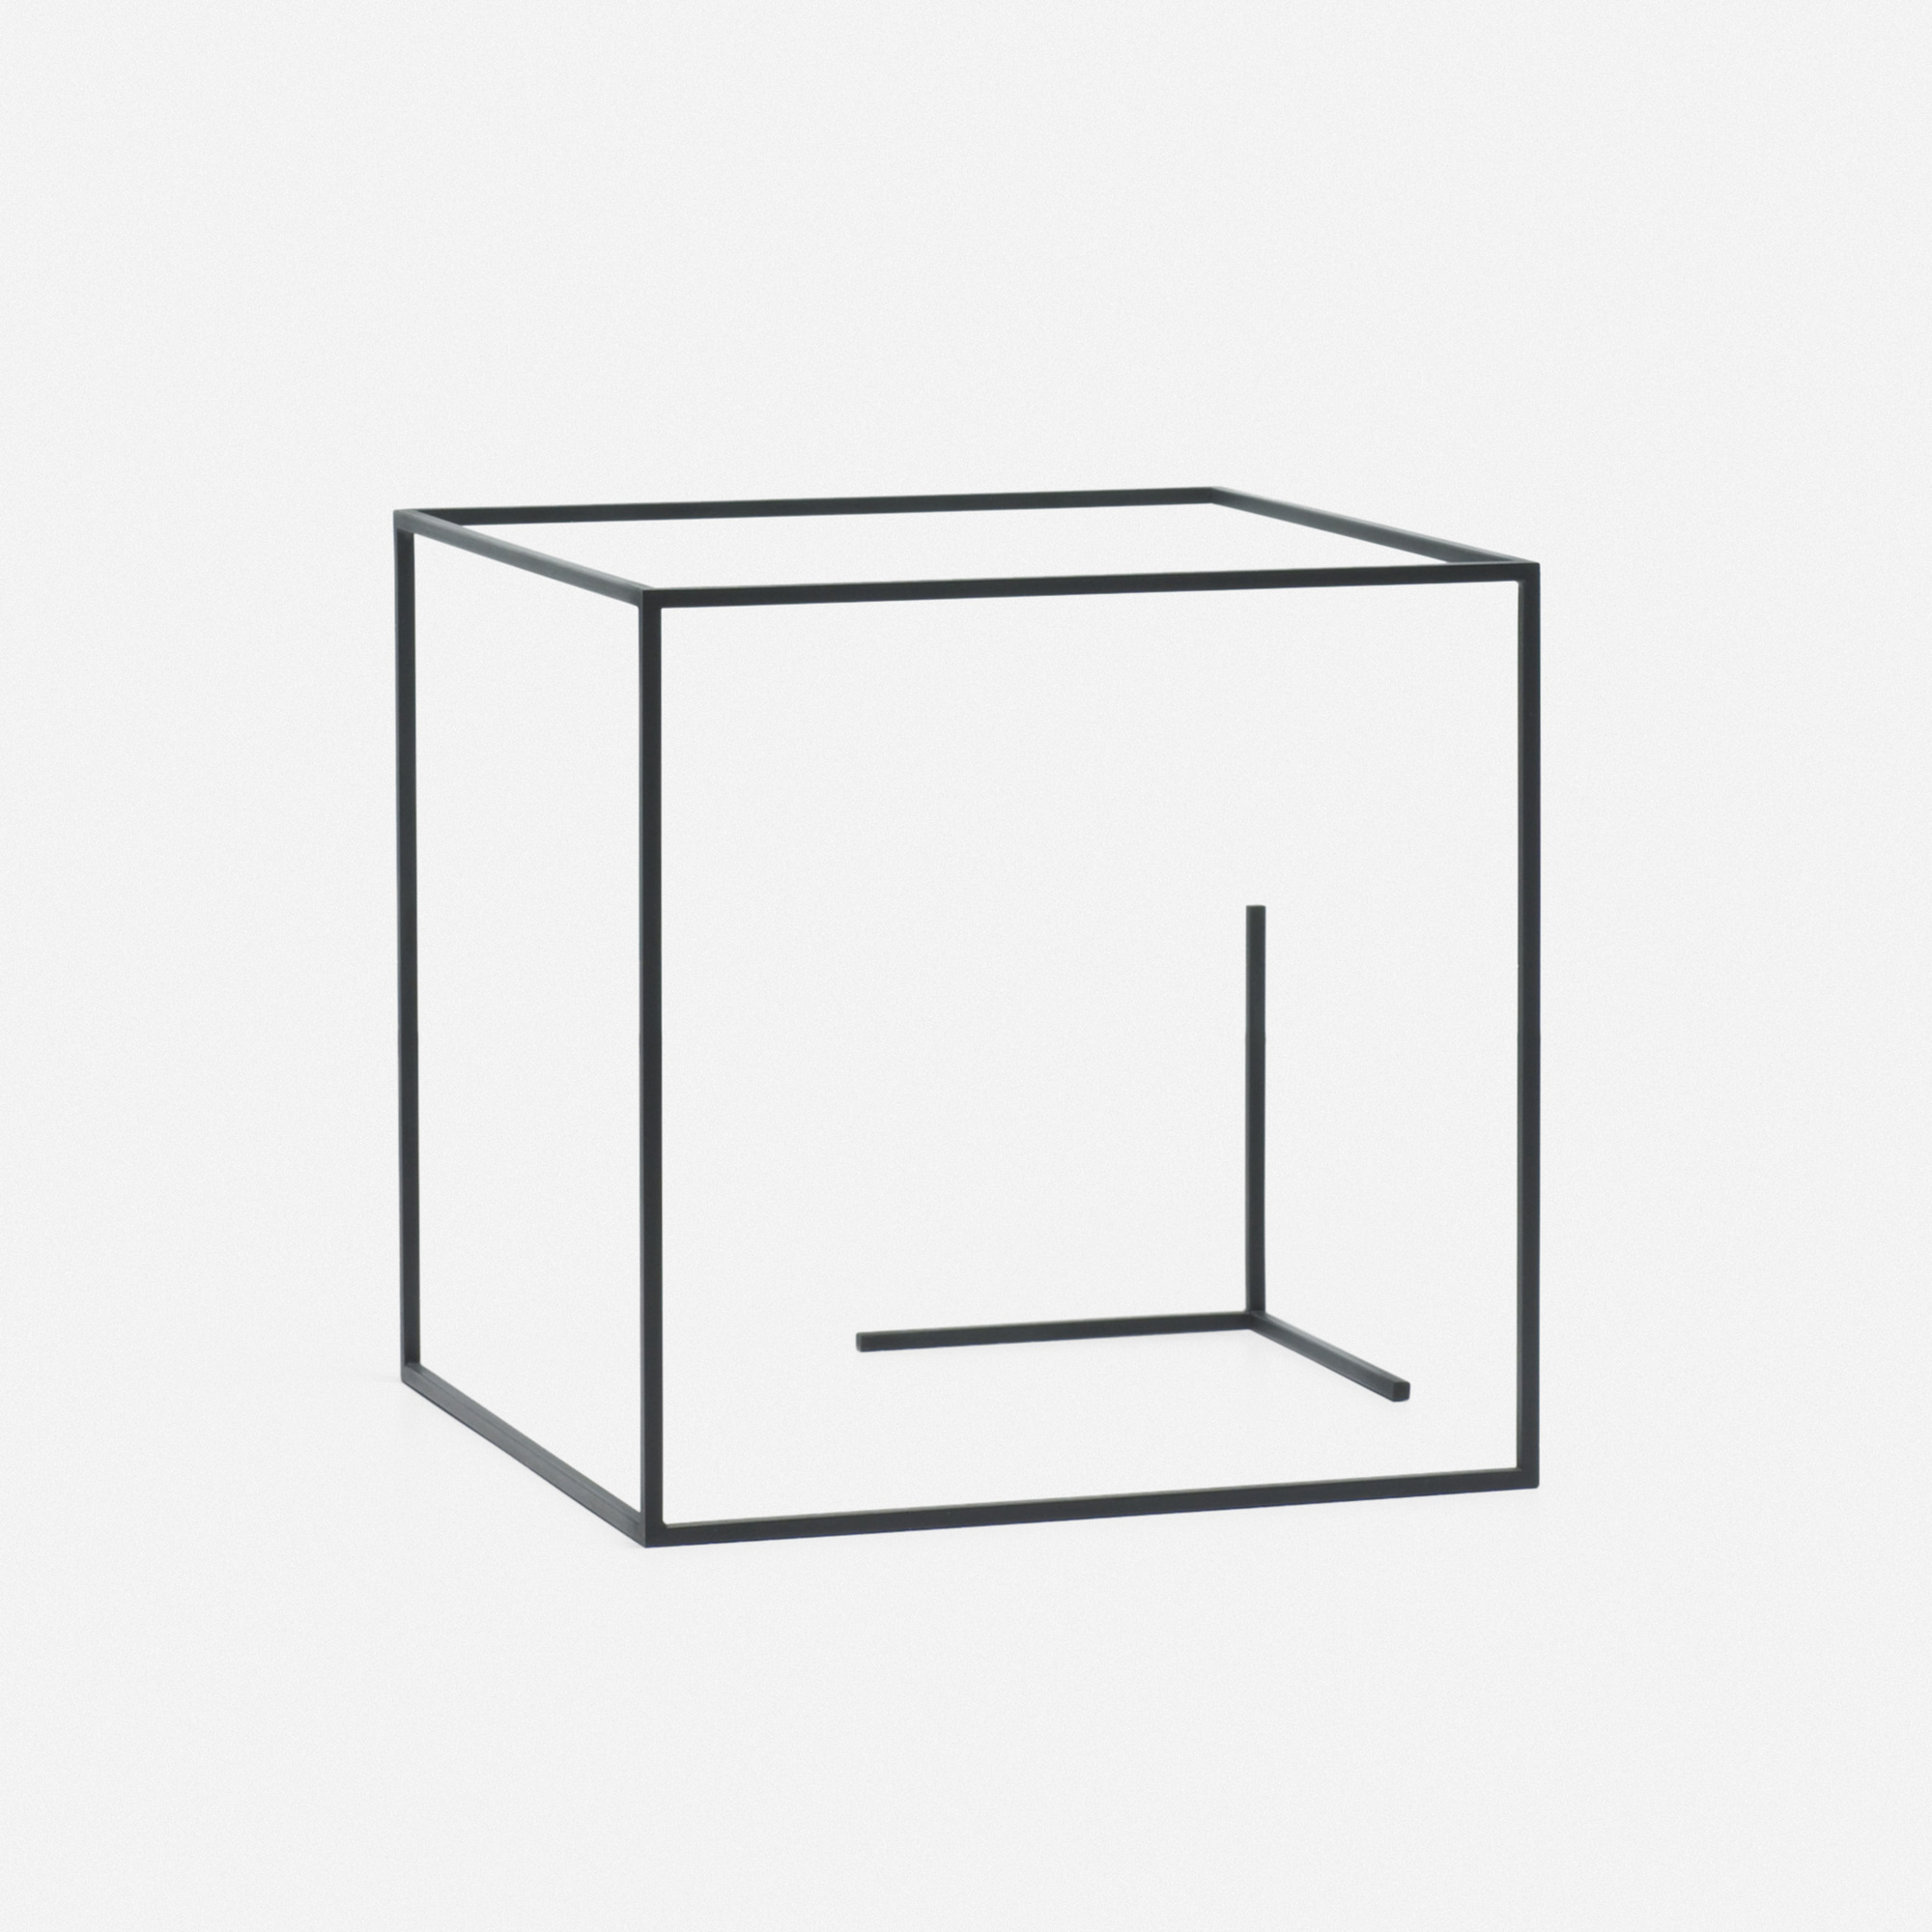 342: Ron Gilad / Cube + Corner No. 2 (from Spaces, Etc.) (1 of 1)